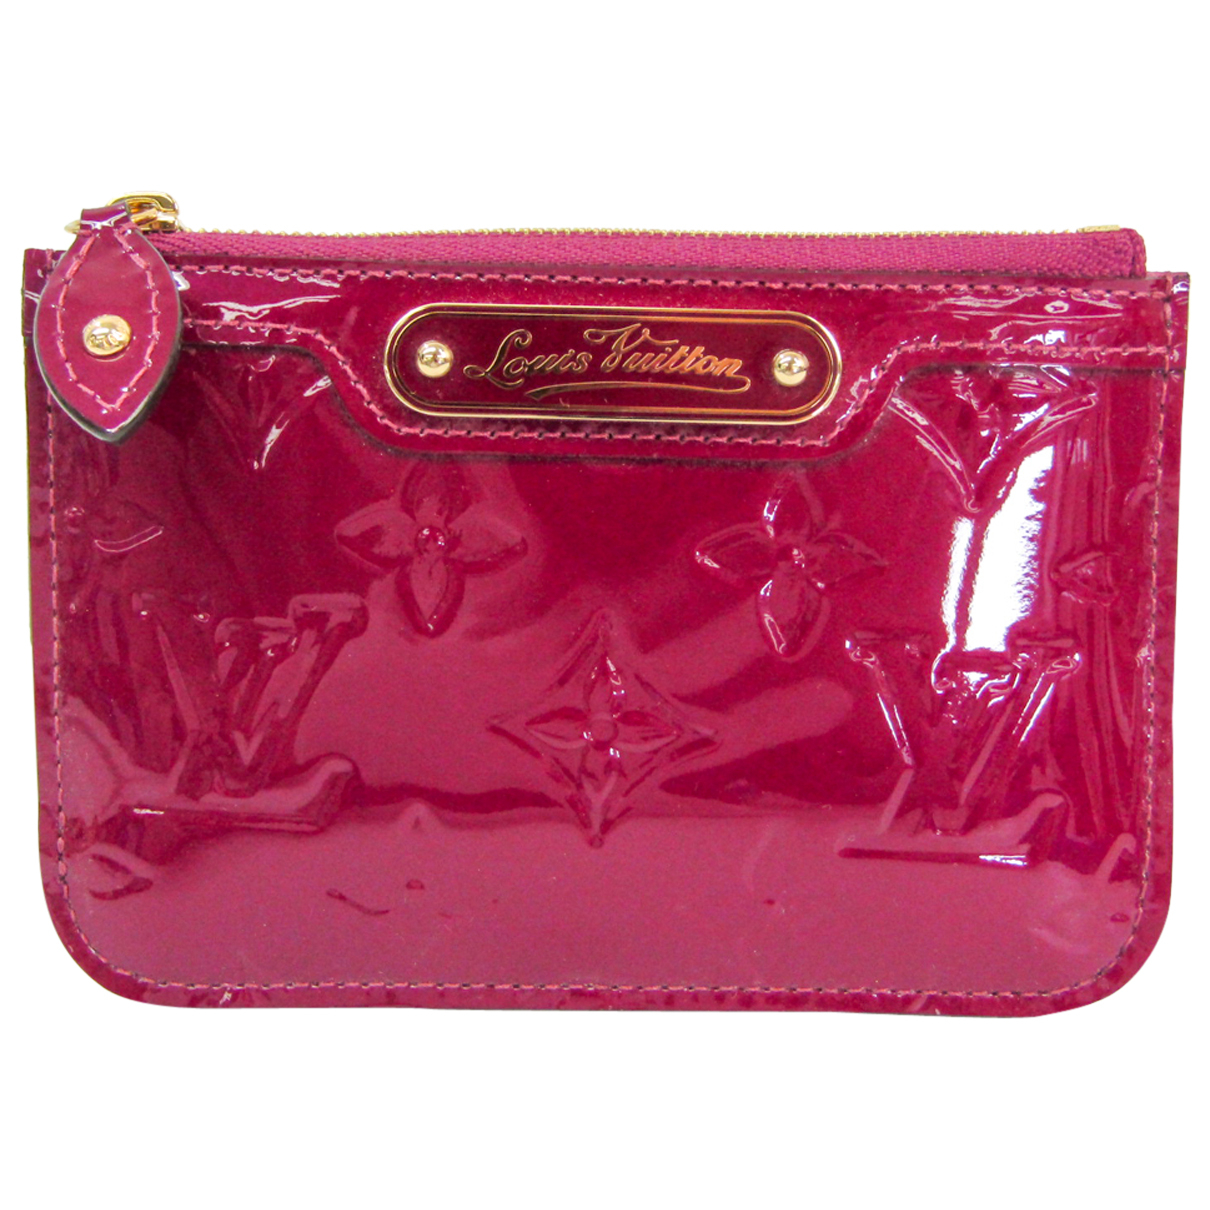 Louis Vuitton N Red Patent leather wallet for Women N